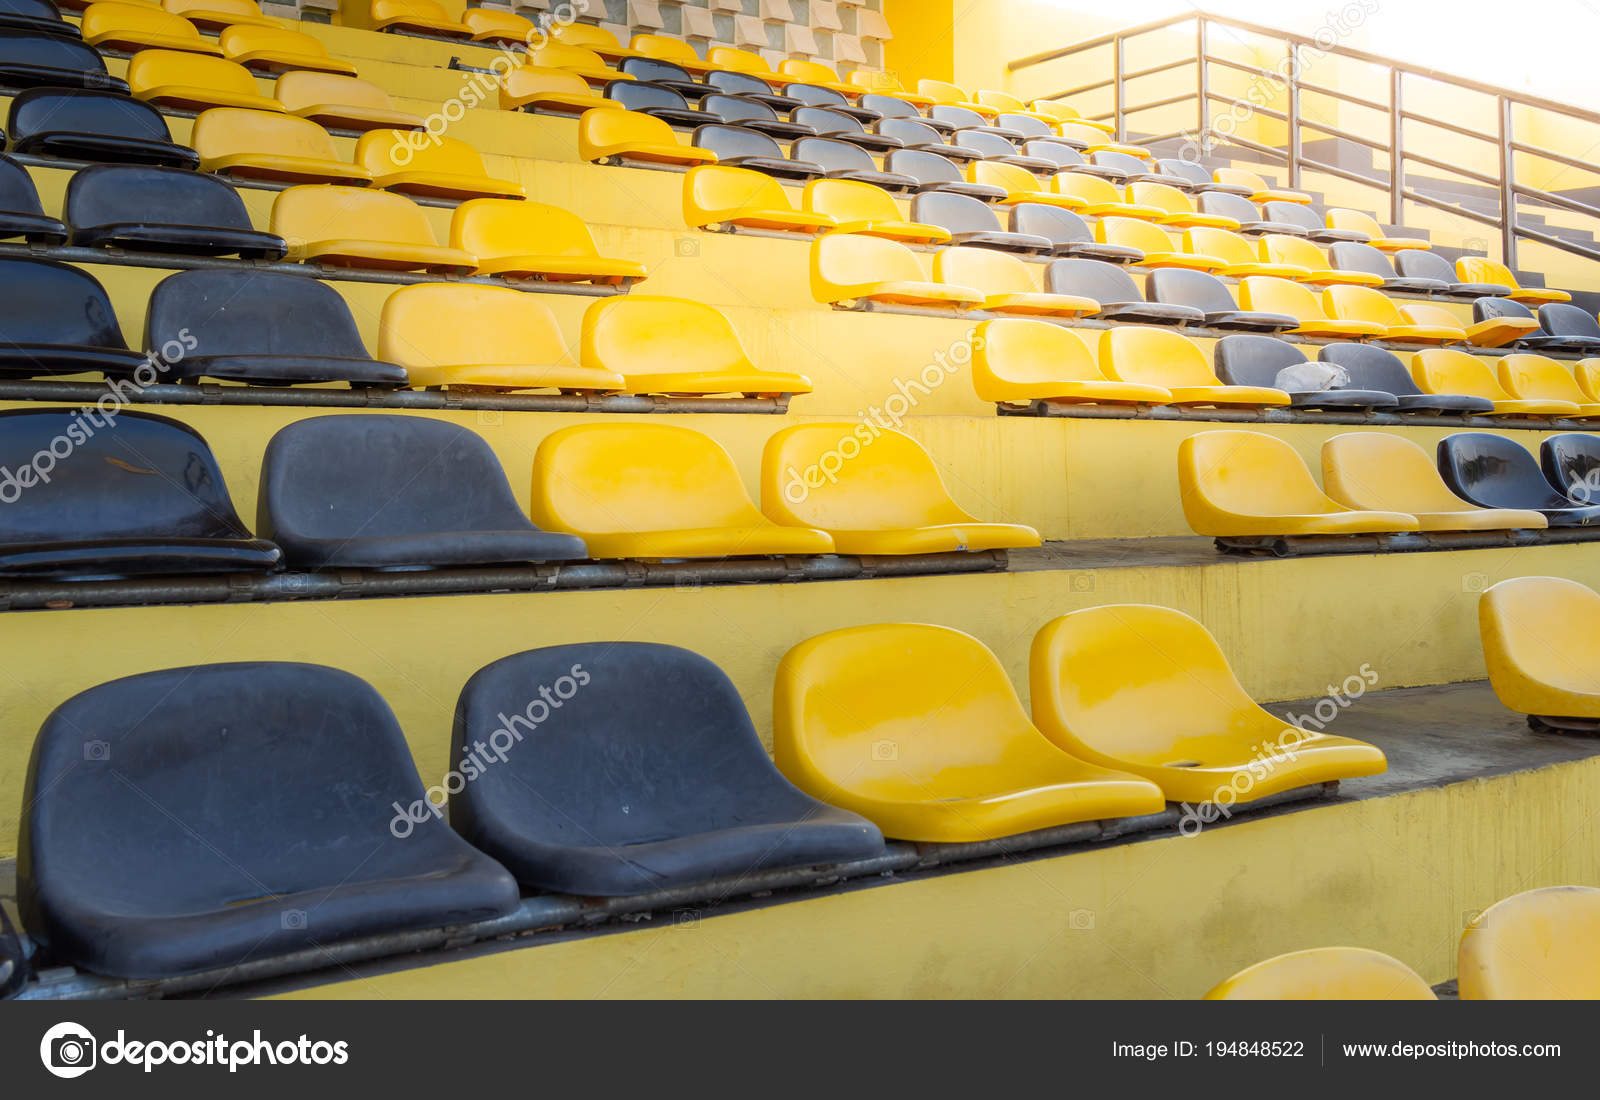 Image result for black and yellow stadium seats